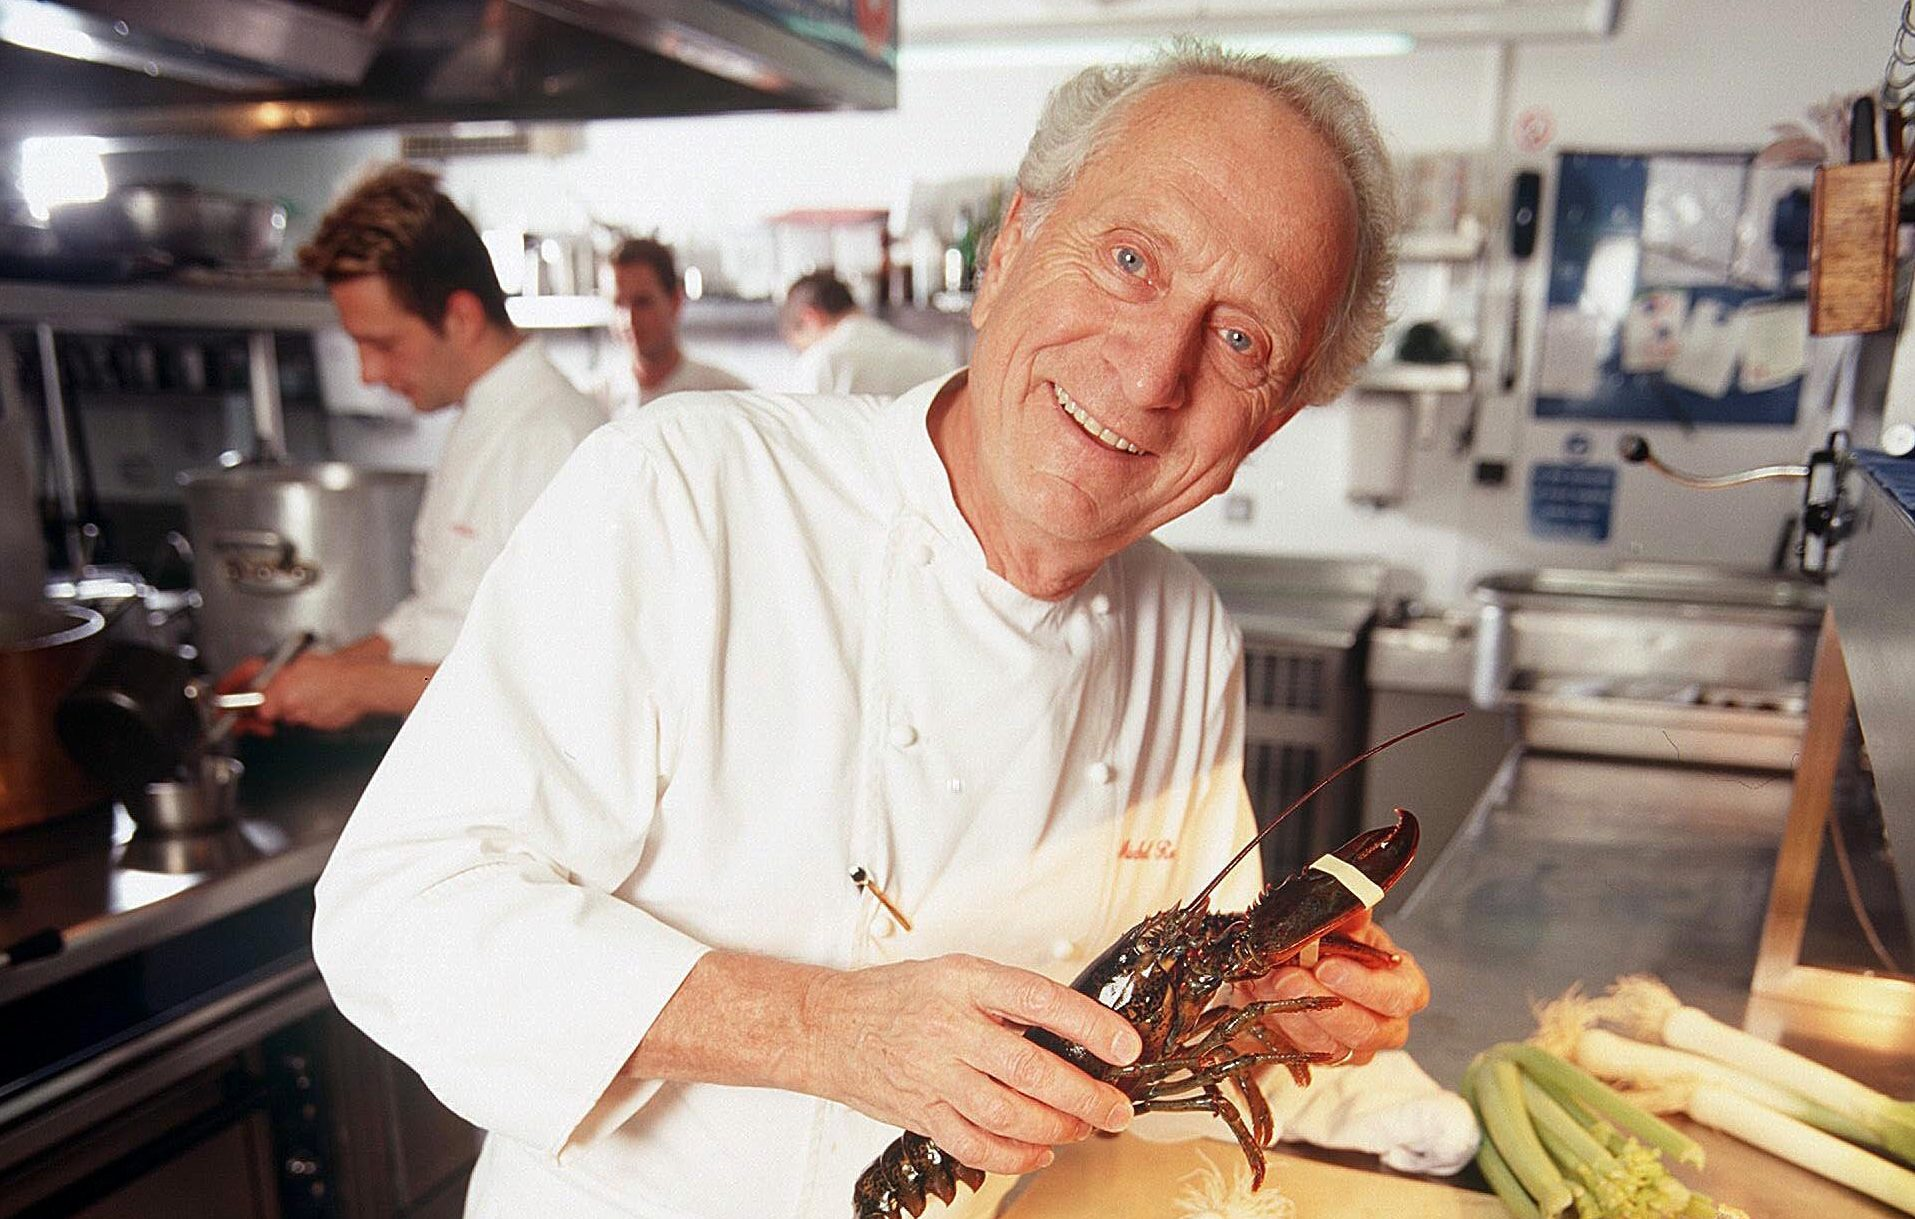 Legendary French chef Michel Roux has died aged 79